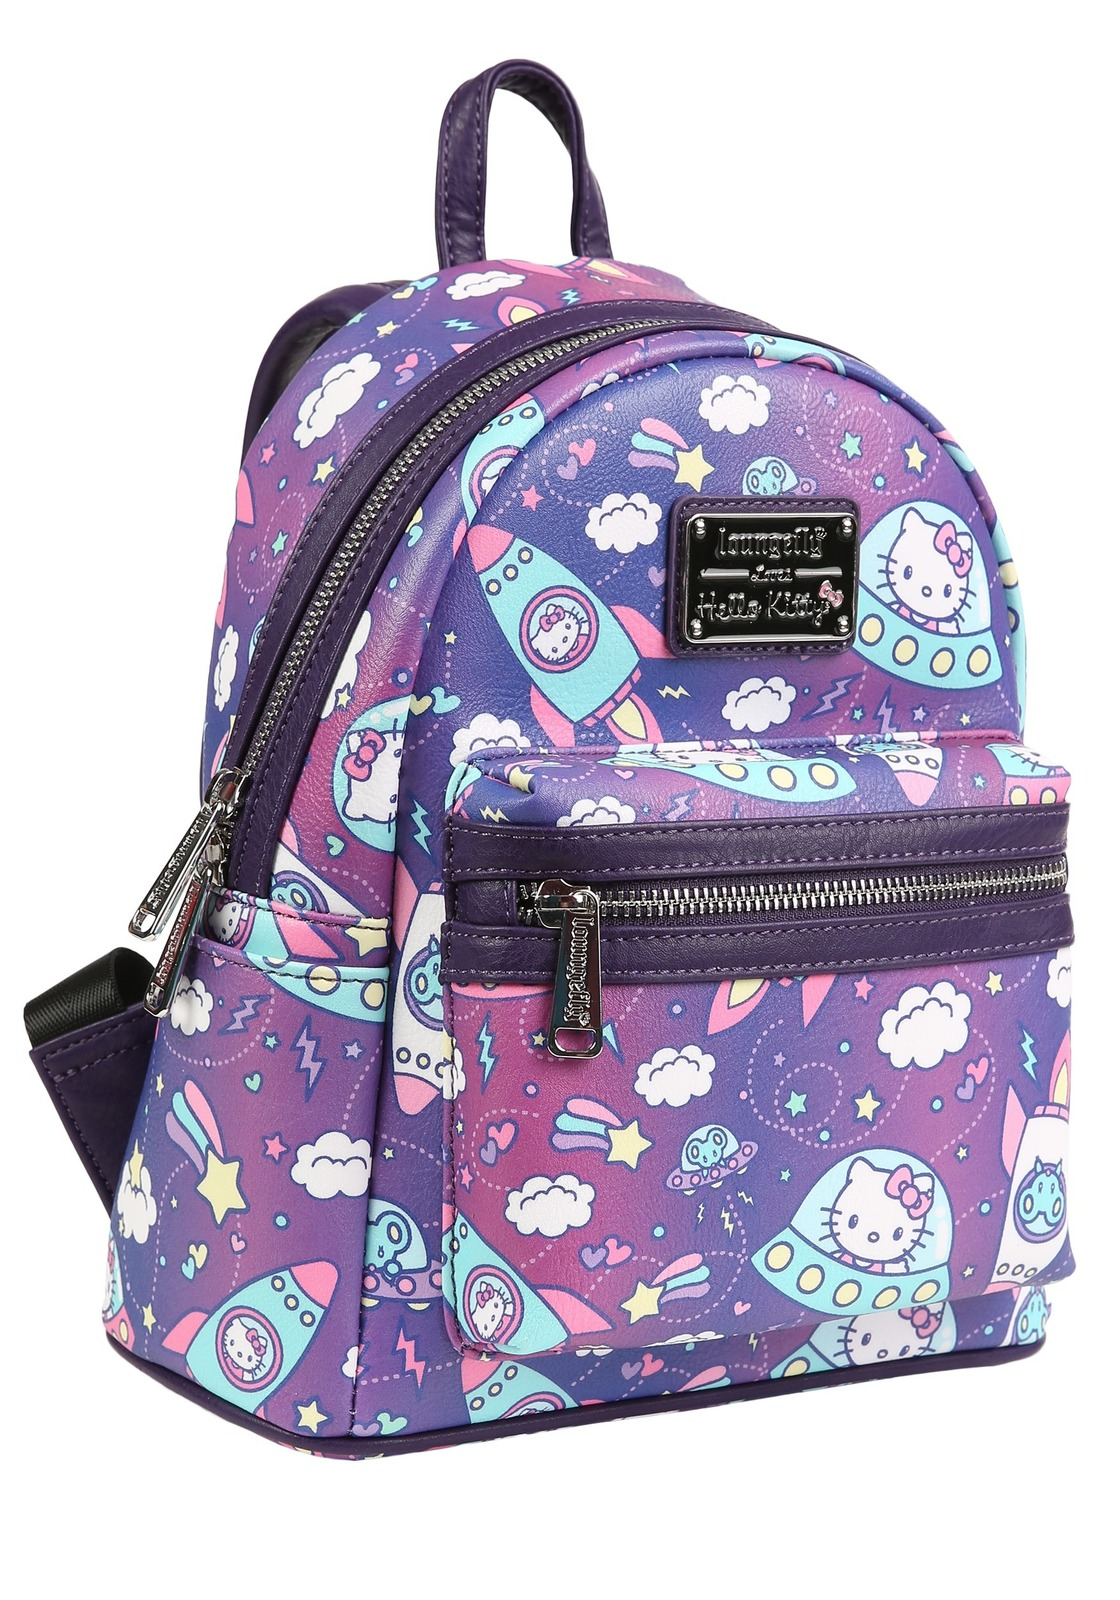 157ca86c9 Loungefly: Hello Kitty - Space Mini Backpack | Women's | at Mighty ...